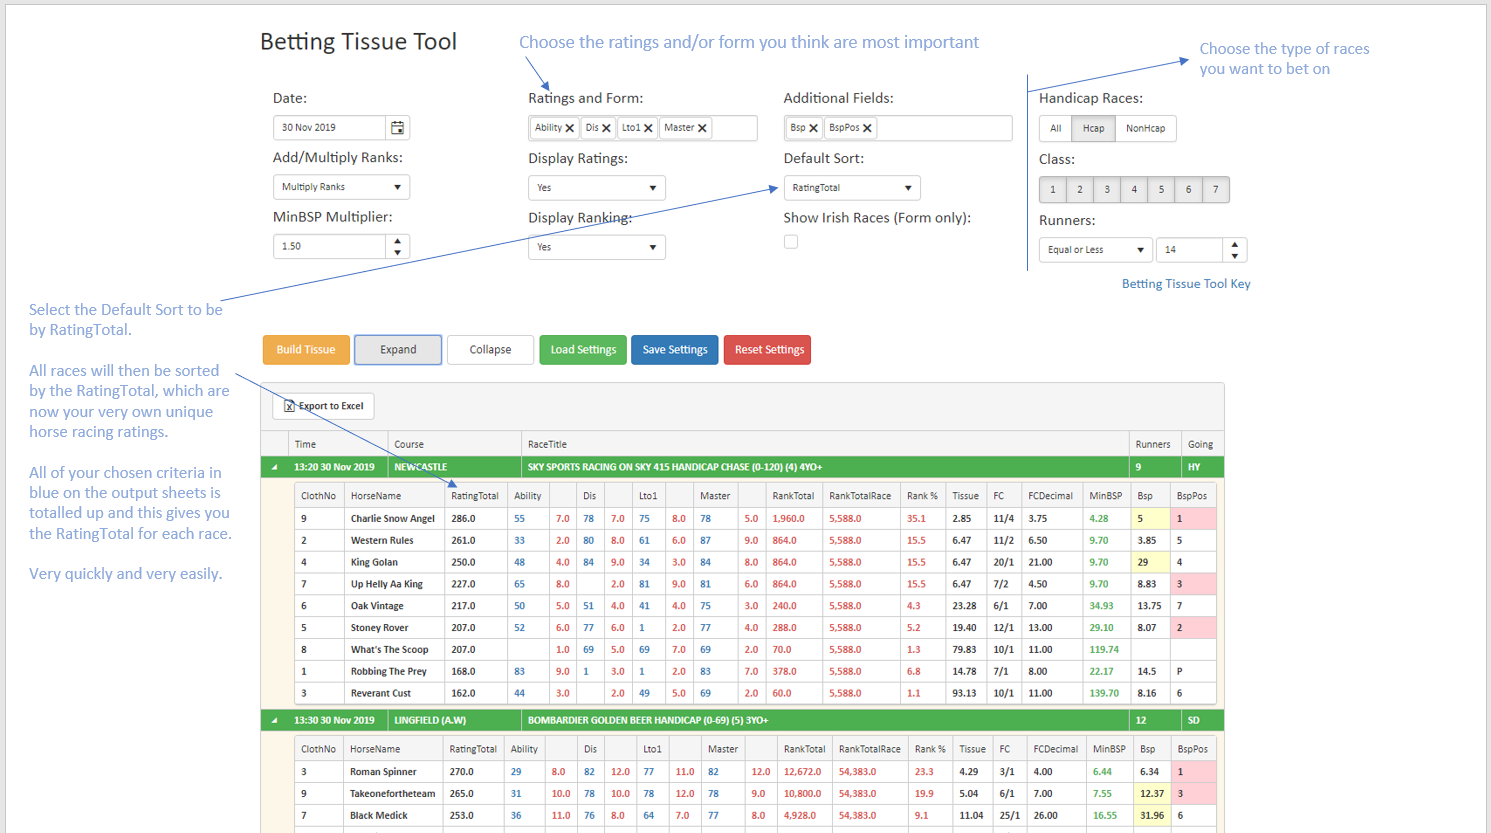 Create your own horse racing ratings